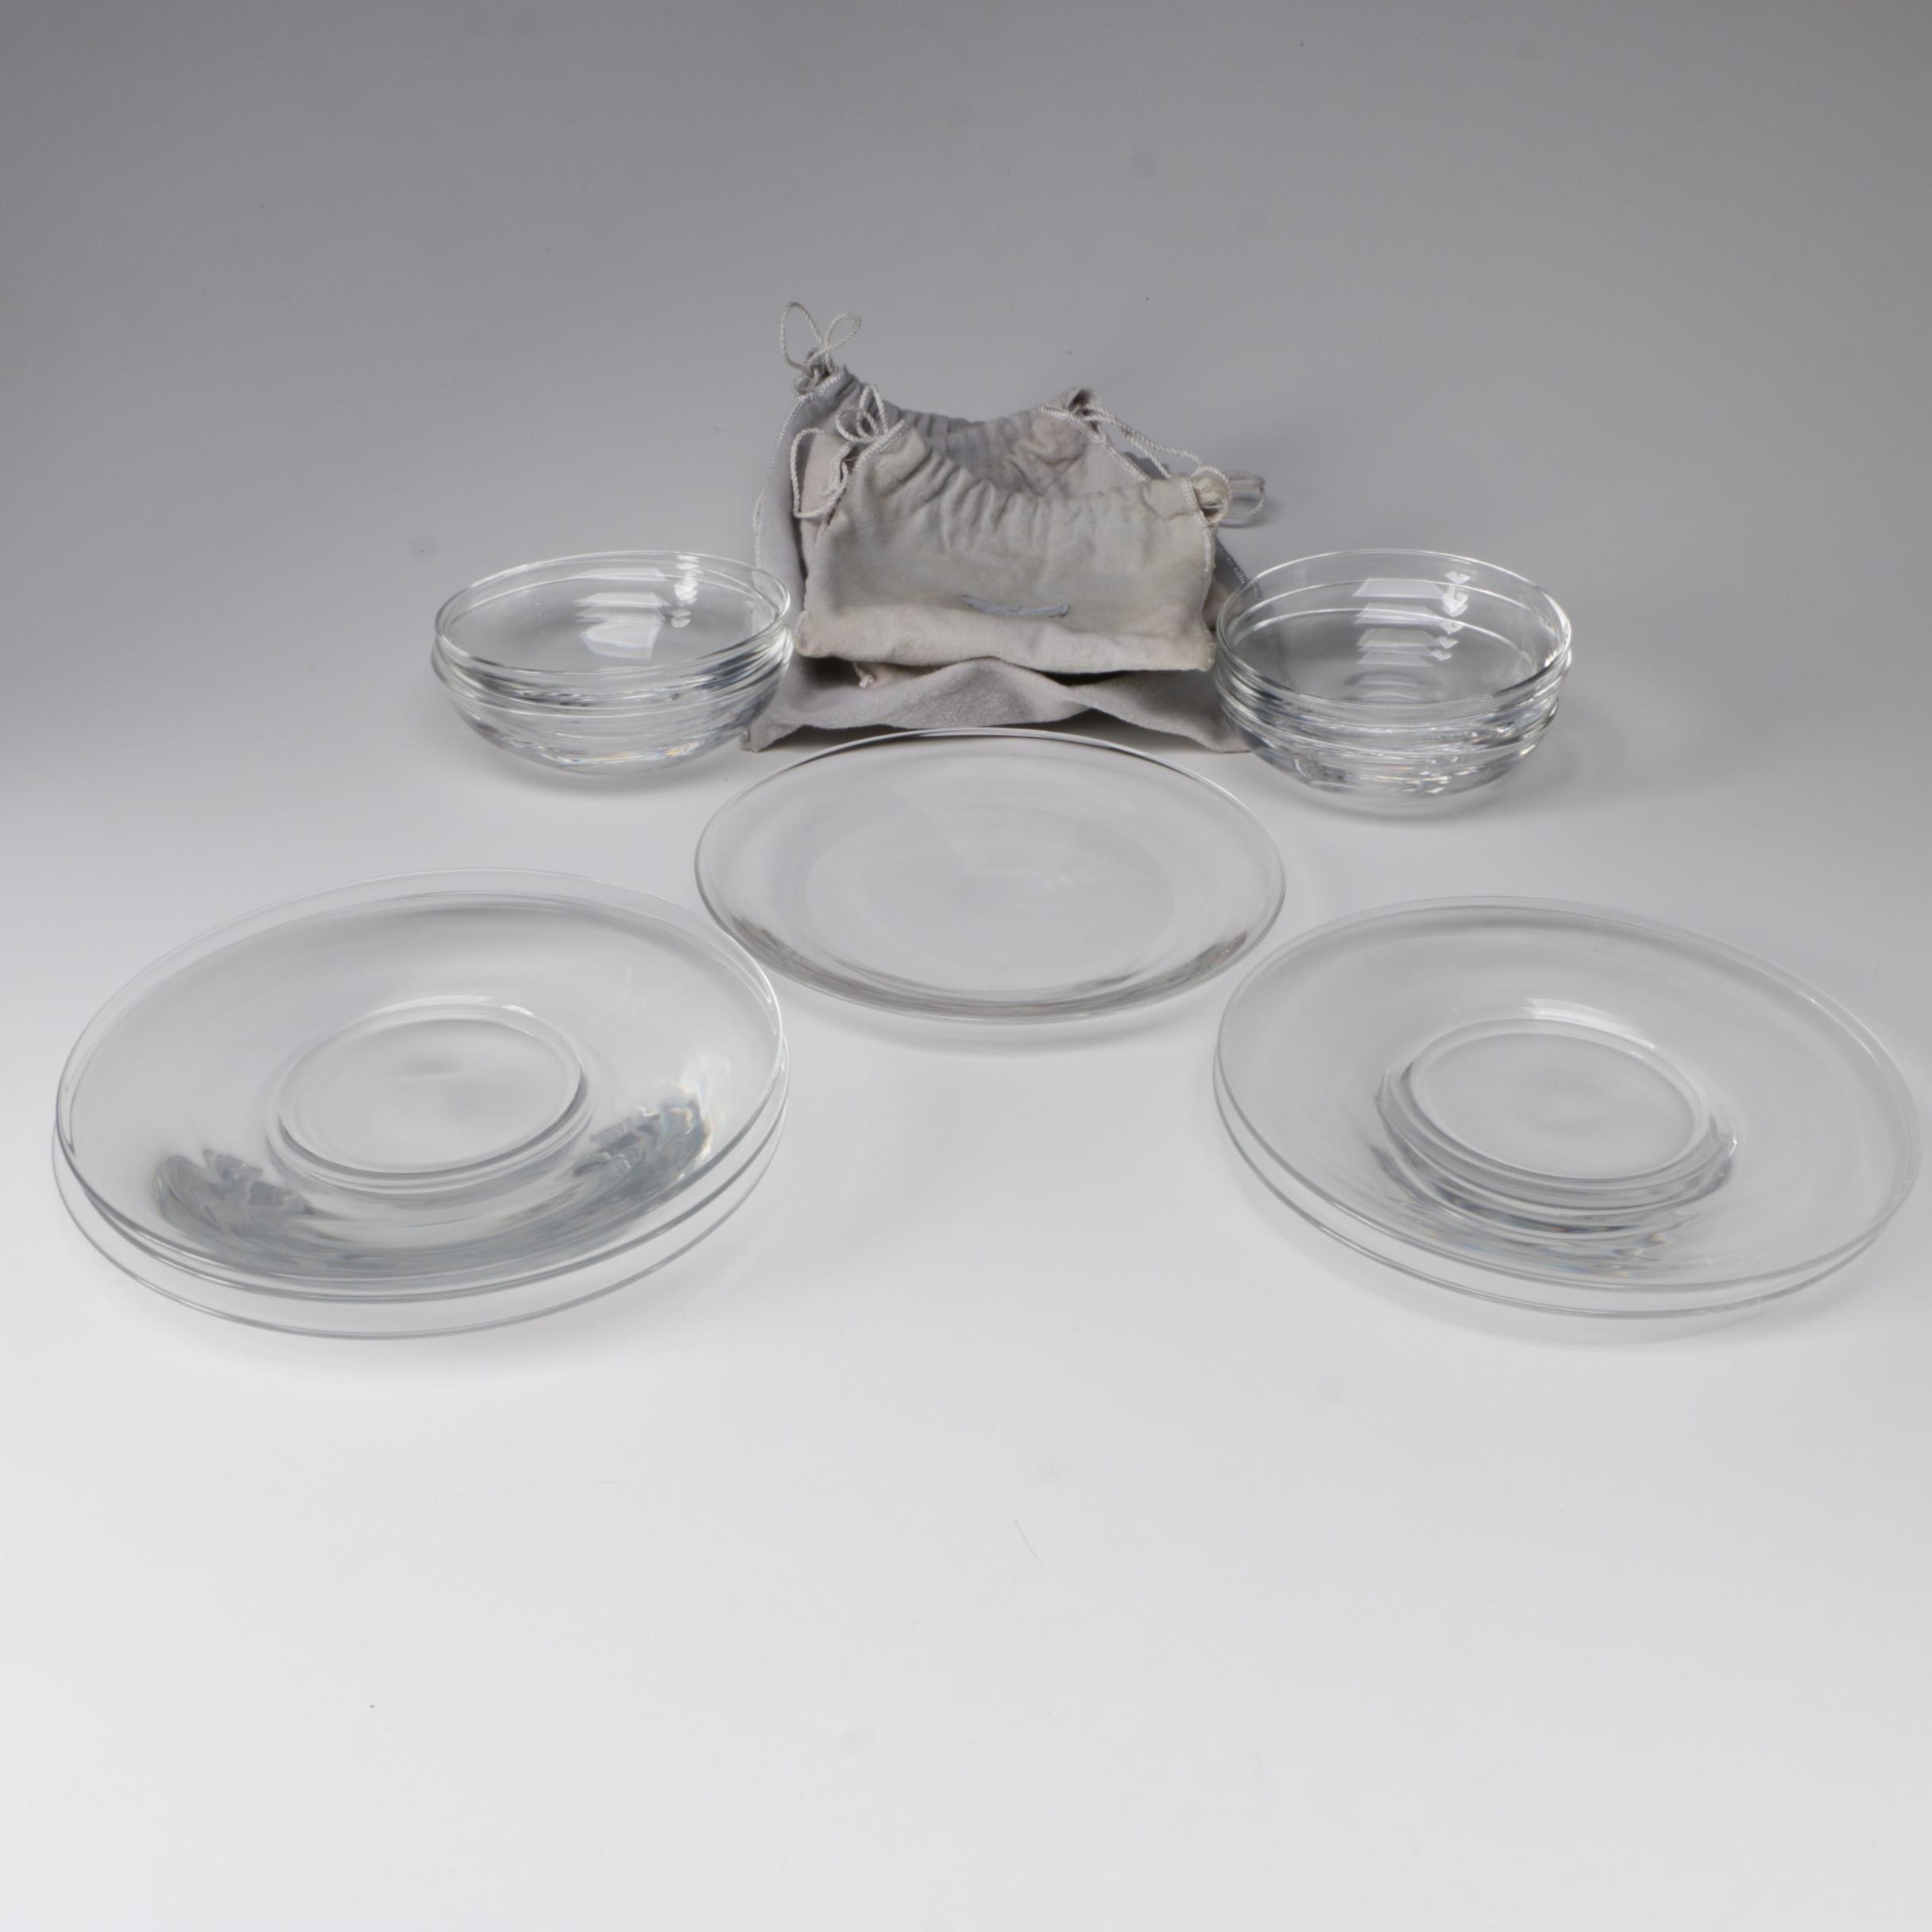 Steuben Art Glass Luncheon Plates and Bowls, Mid-Century